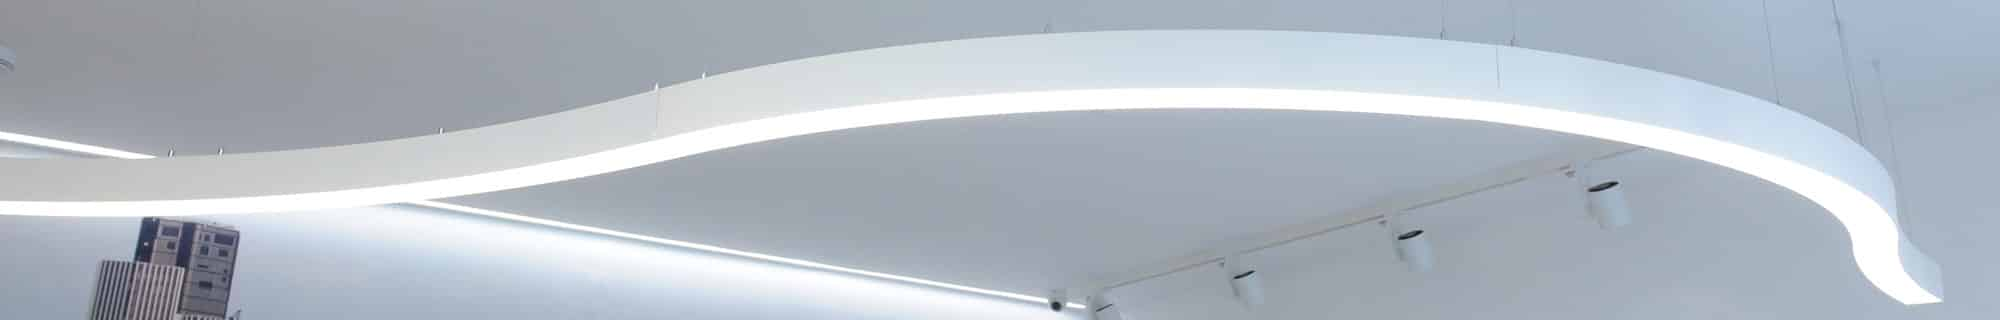 bespoke lighting solutions UK